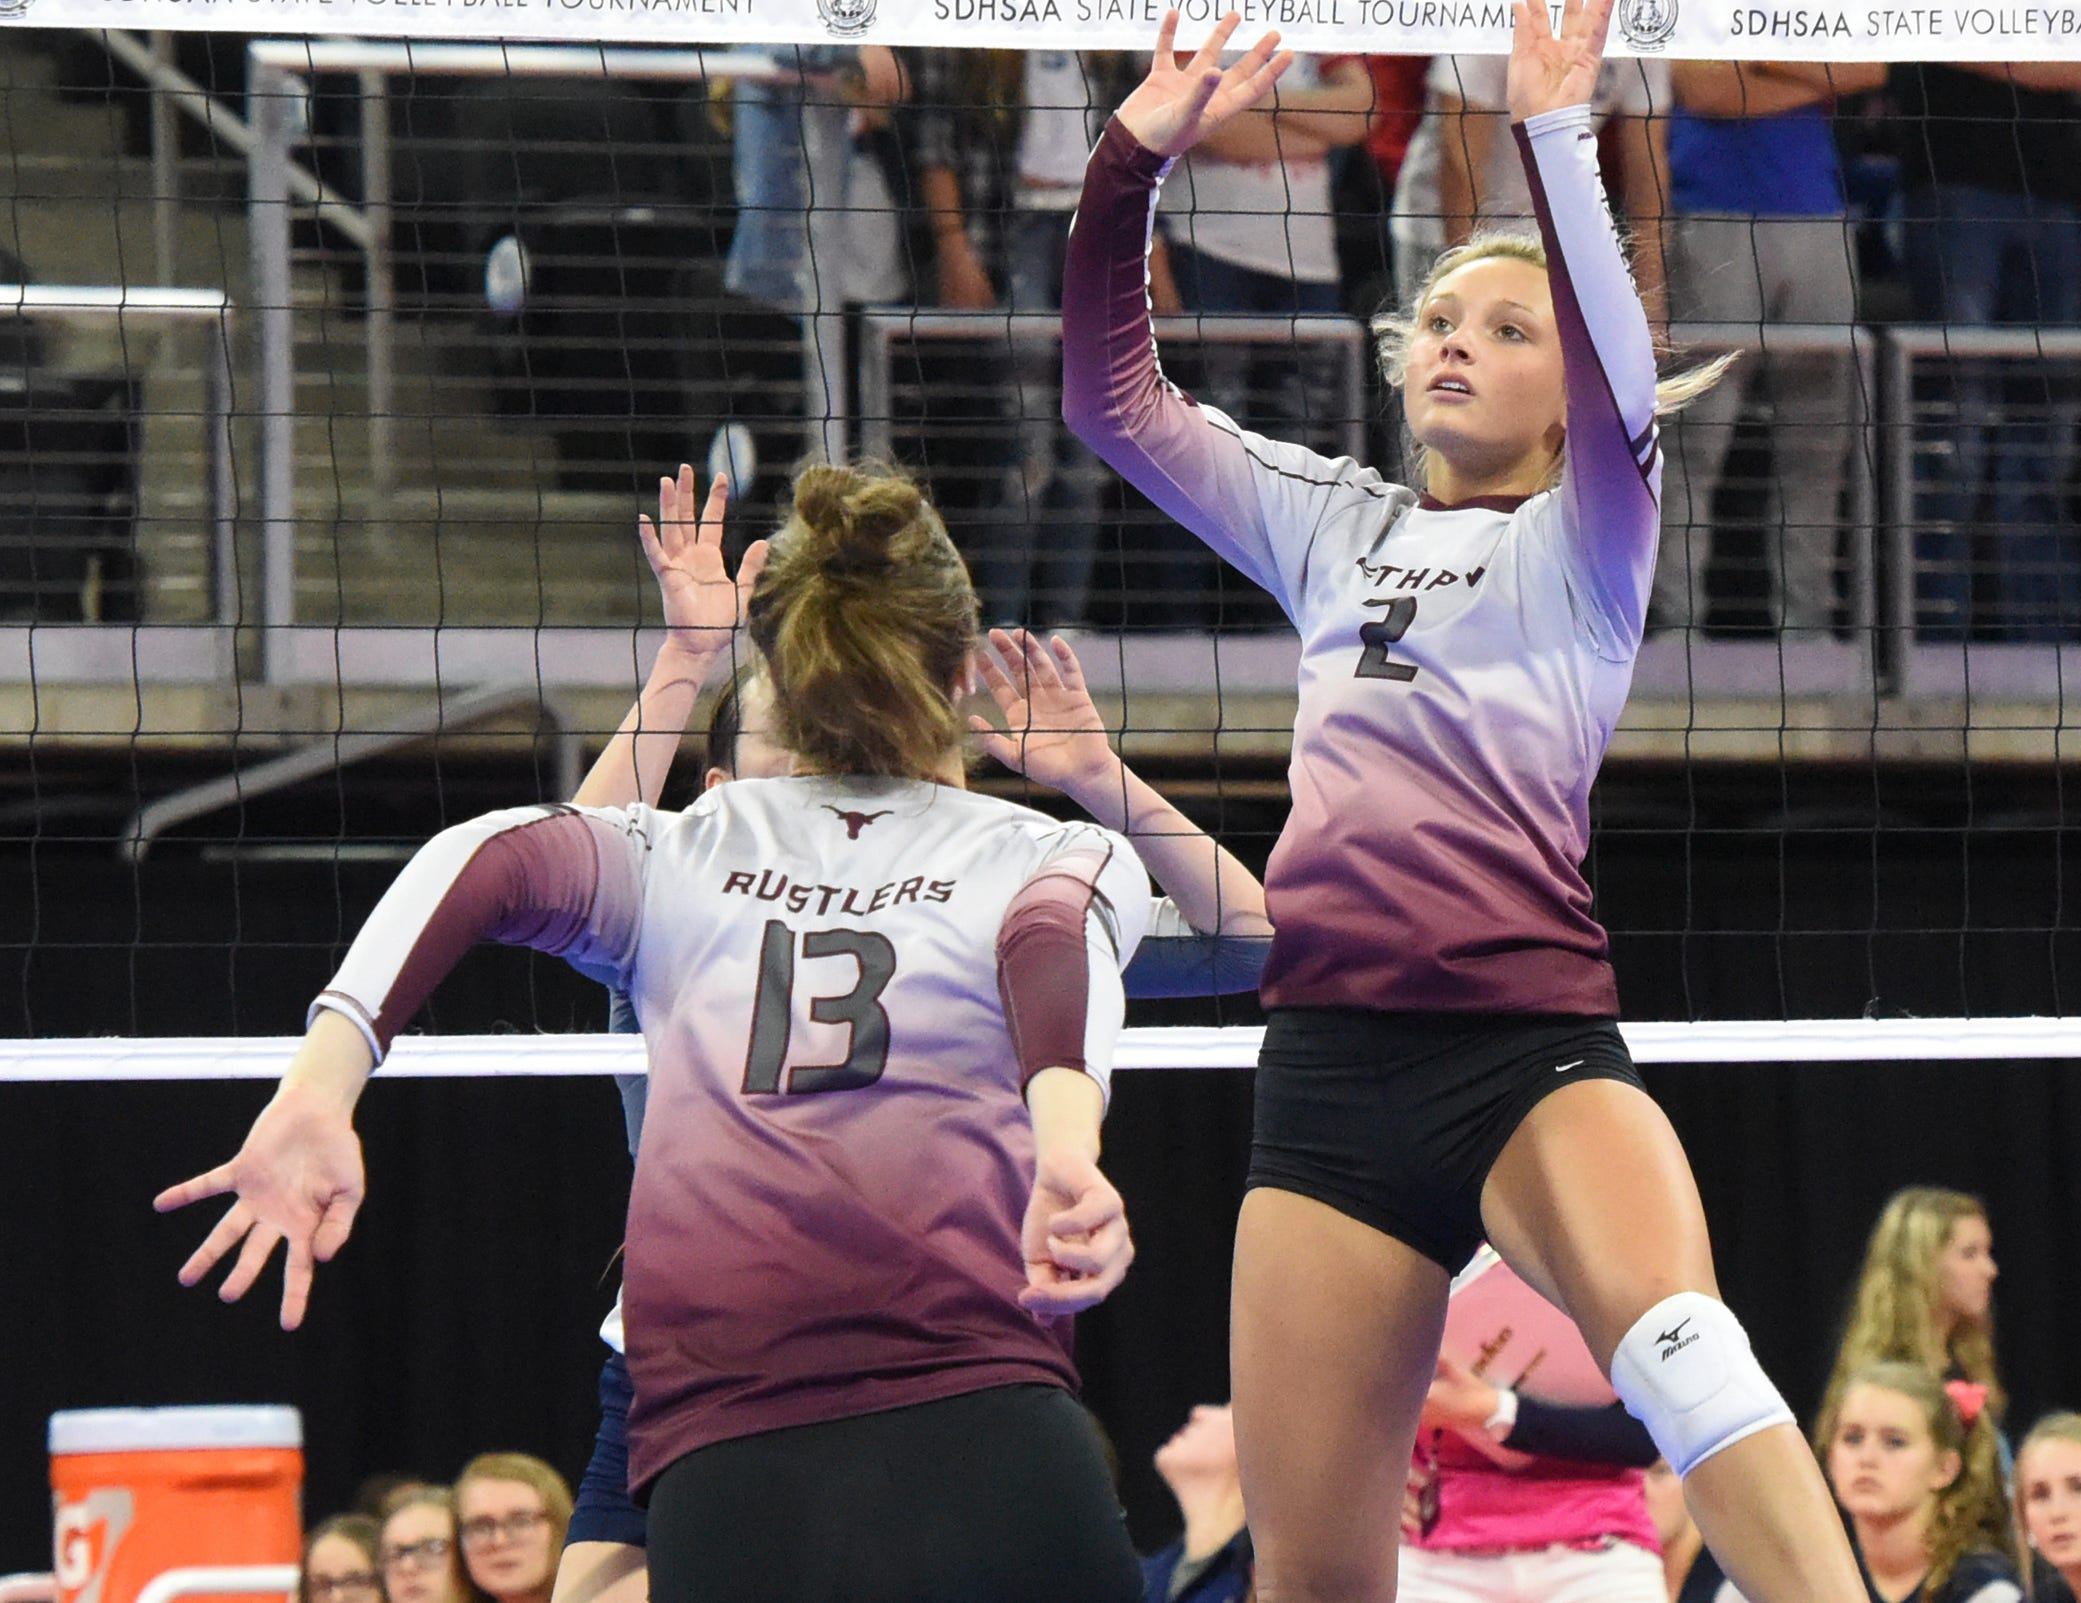 Ethan's Jessica Bartscher (2) sets the ball as Karly Gustafson (13) goes to spike it during a match against Burke, Friday, Nov. 16, 2018, at the Denny Sanford Premier Center in Sioux Falls, S.D.